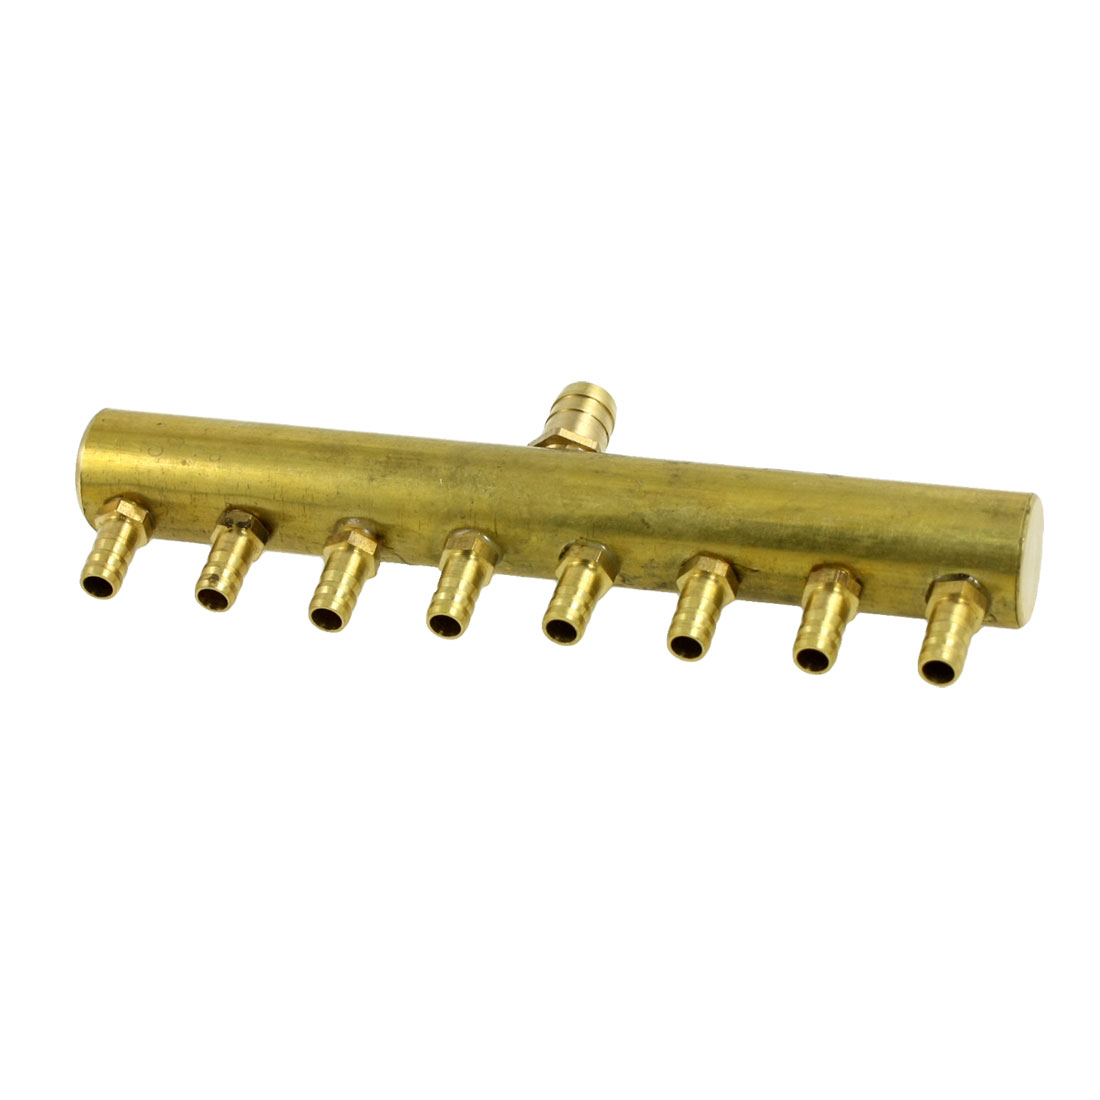 "1/5"" x 5/16"" Brass 8 Position Barbed Air Hose Fitting Coupler Connector"